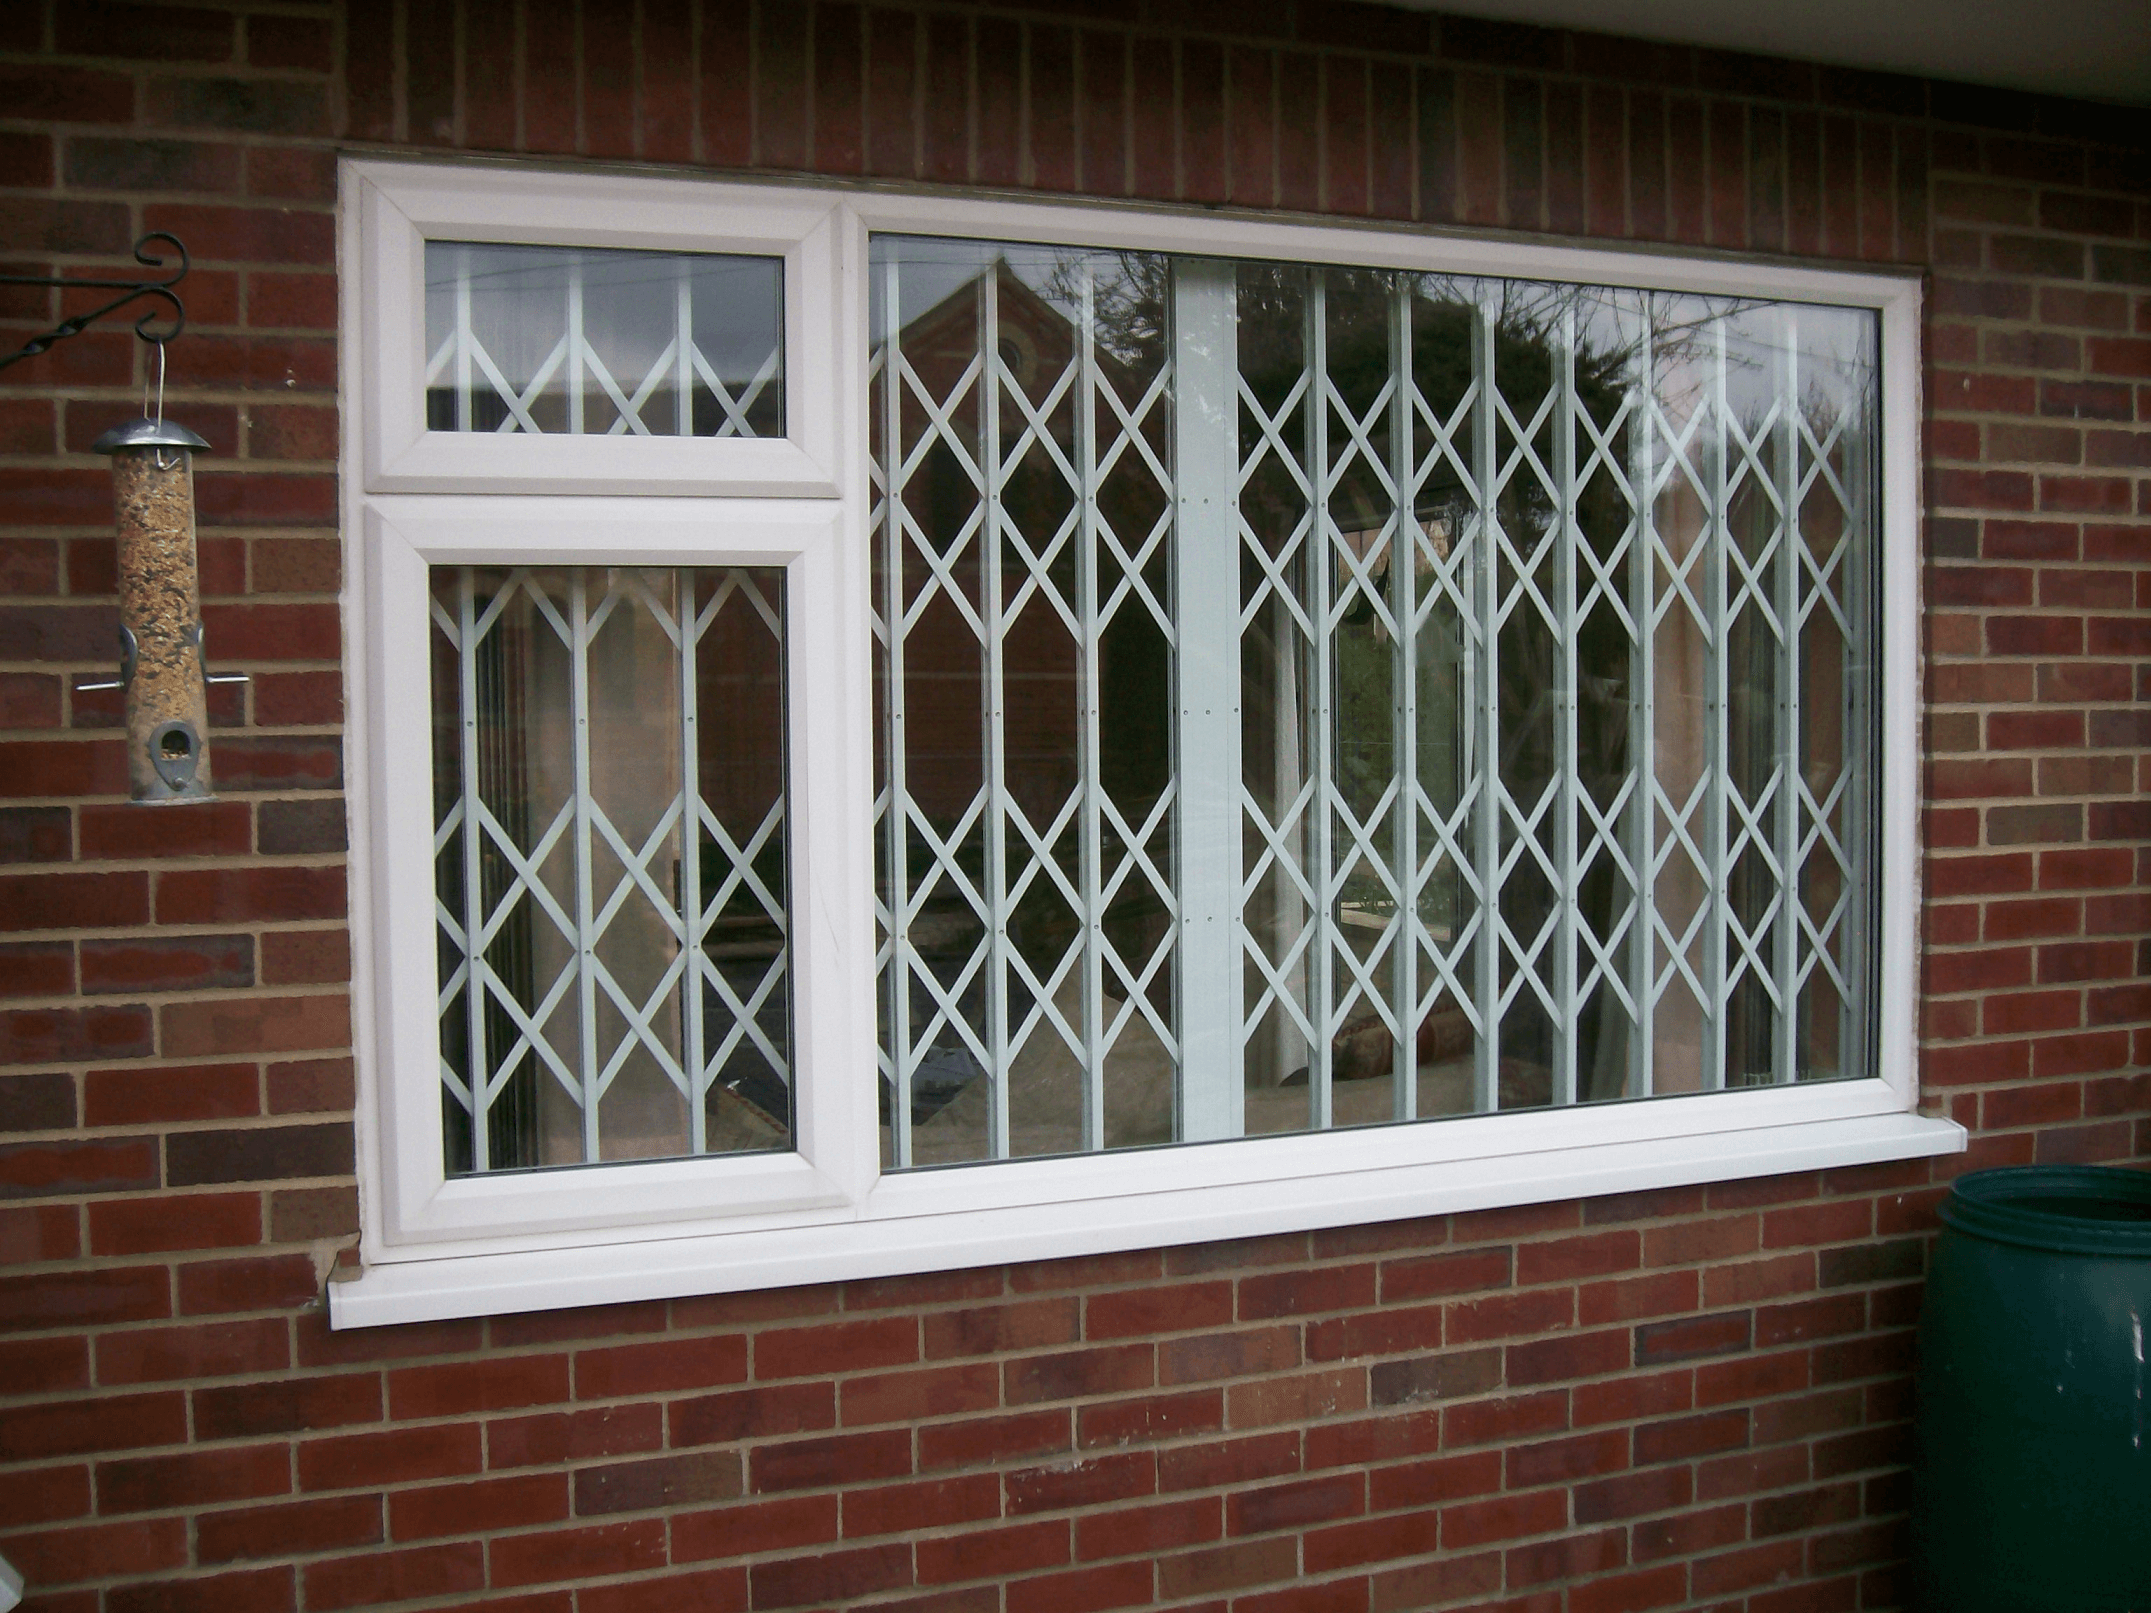 White contemporary window grille design